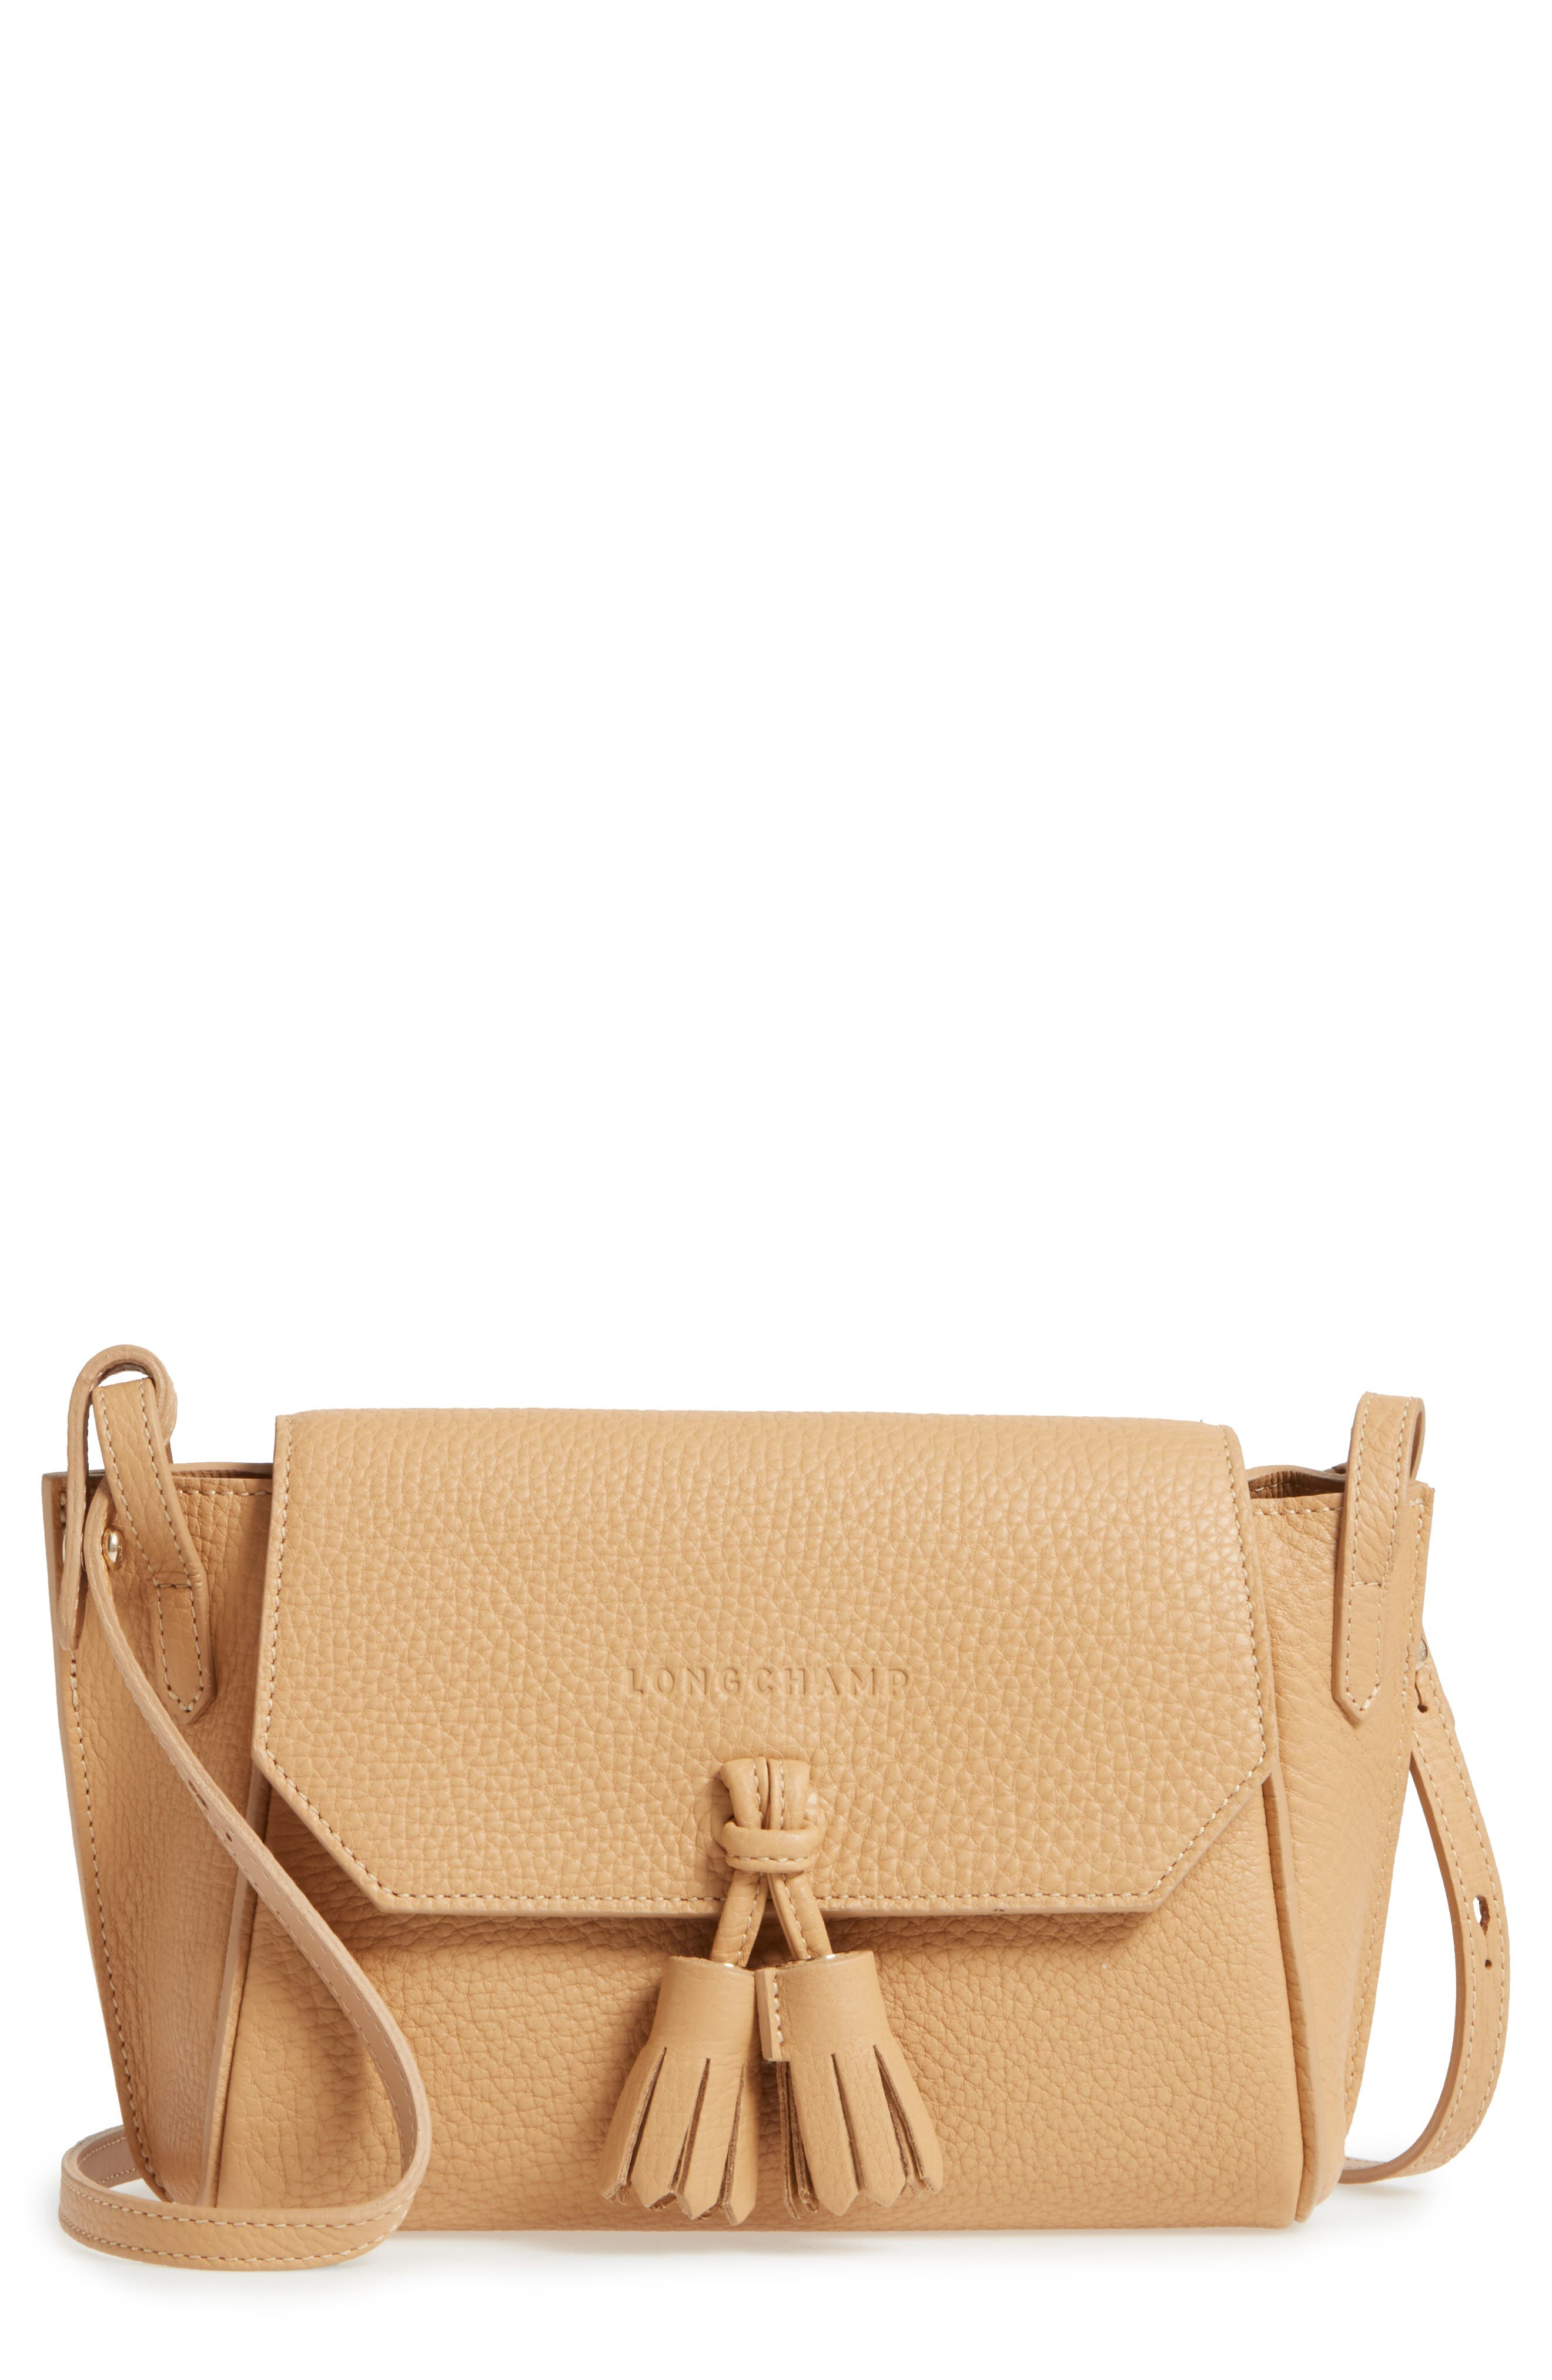 9705445b6750 LONGCHAMP PENELOPE LEATHER CROSSBODY BAG - BEIGE